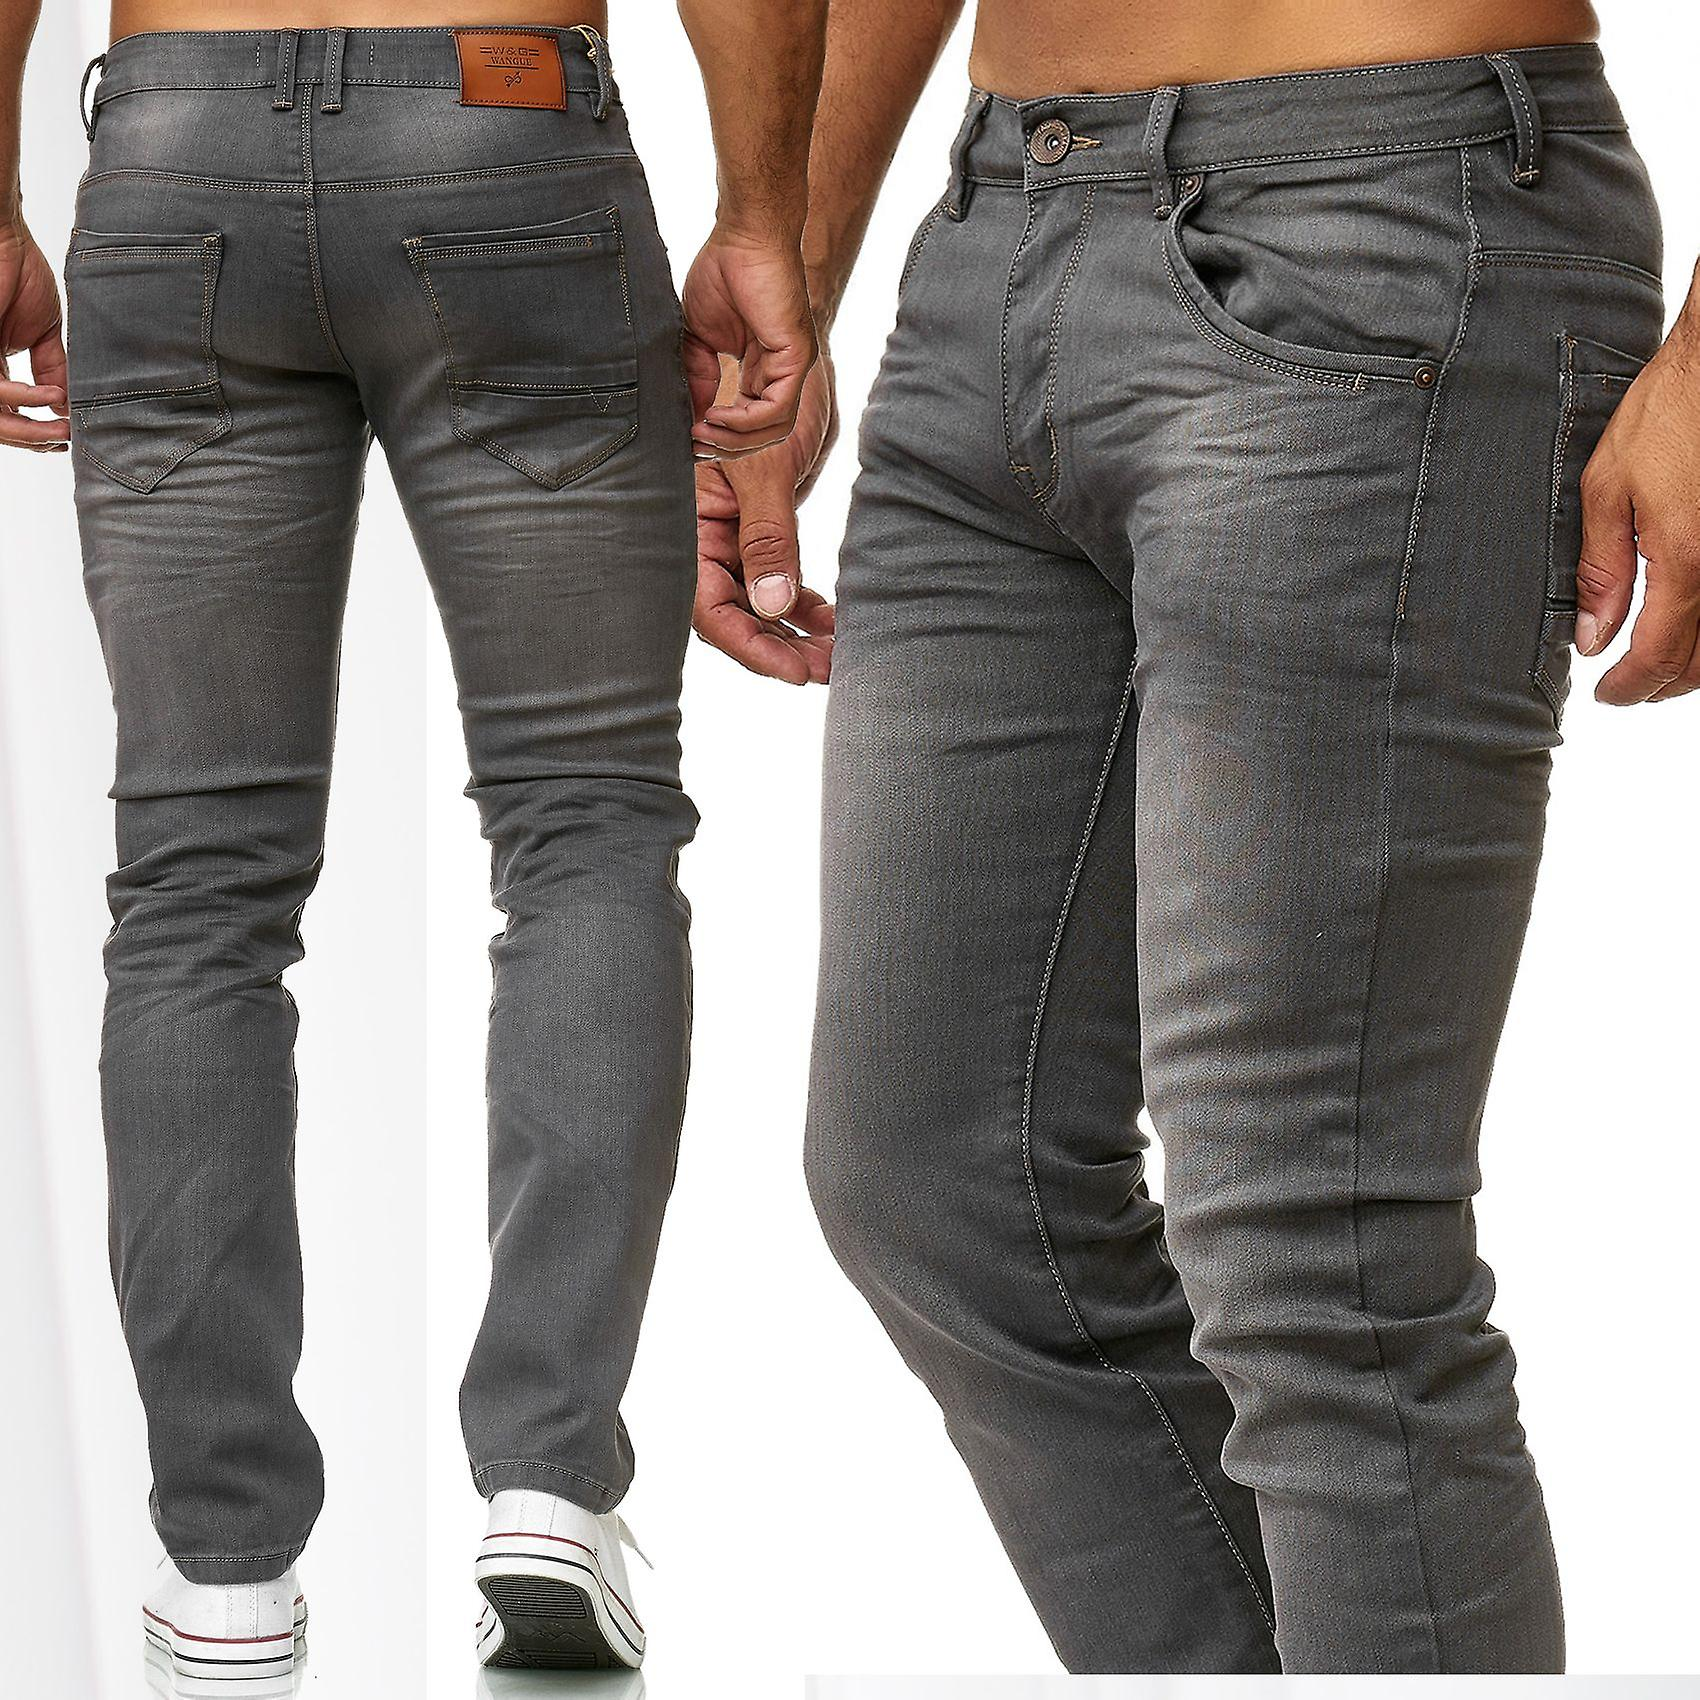 Mens Jeans Slim Fit bukser Denim grå klassisk sort Stonewashed Stretch brukes